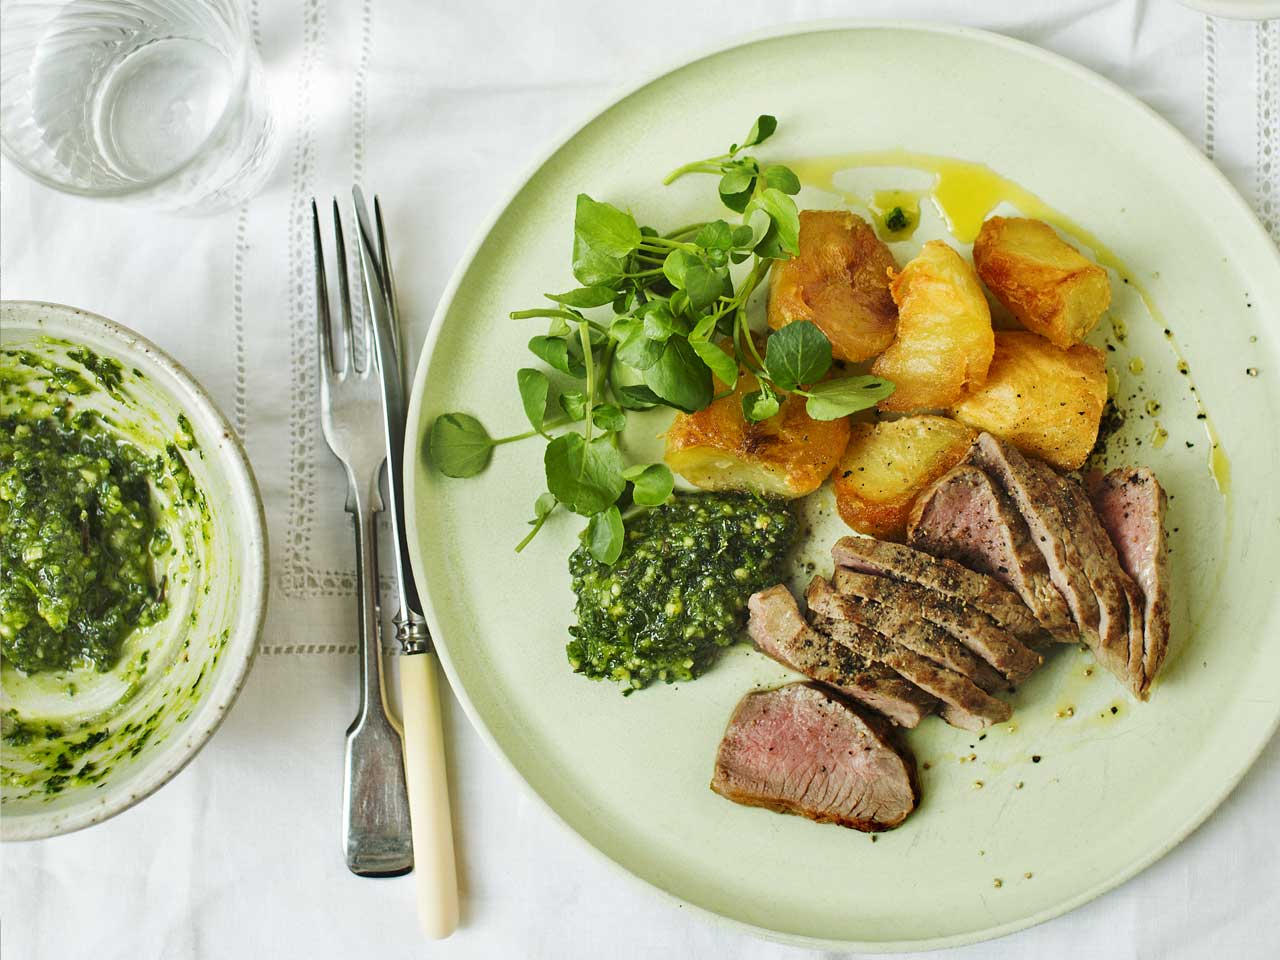 Roast lamb loin fillets with Sicilian relish